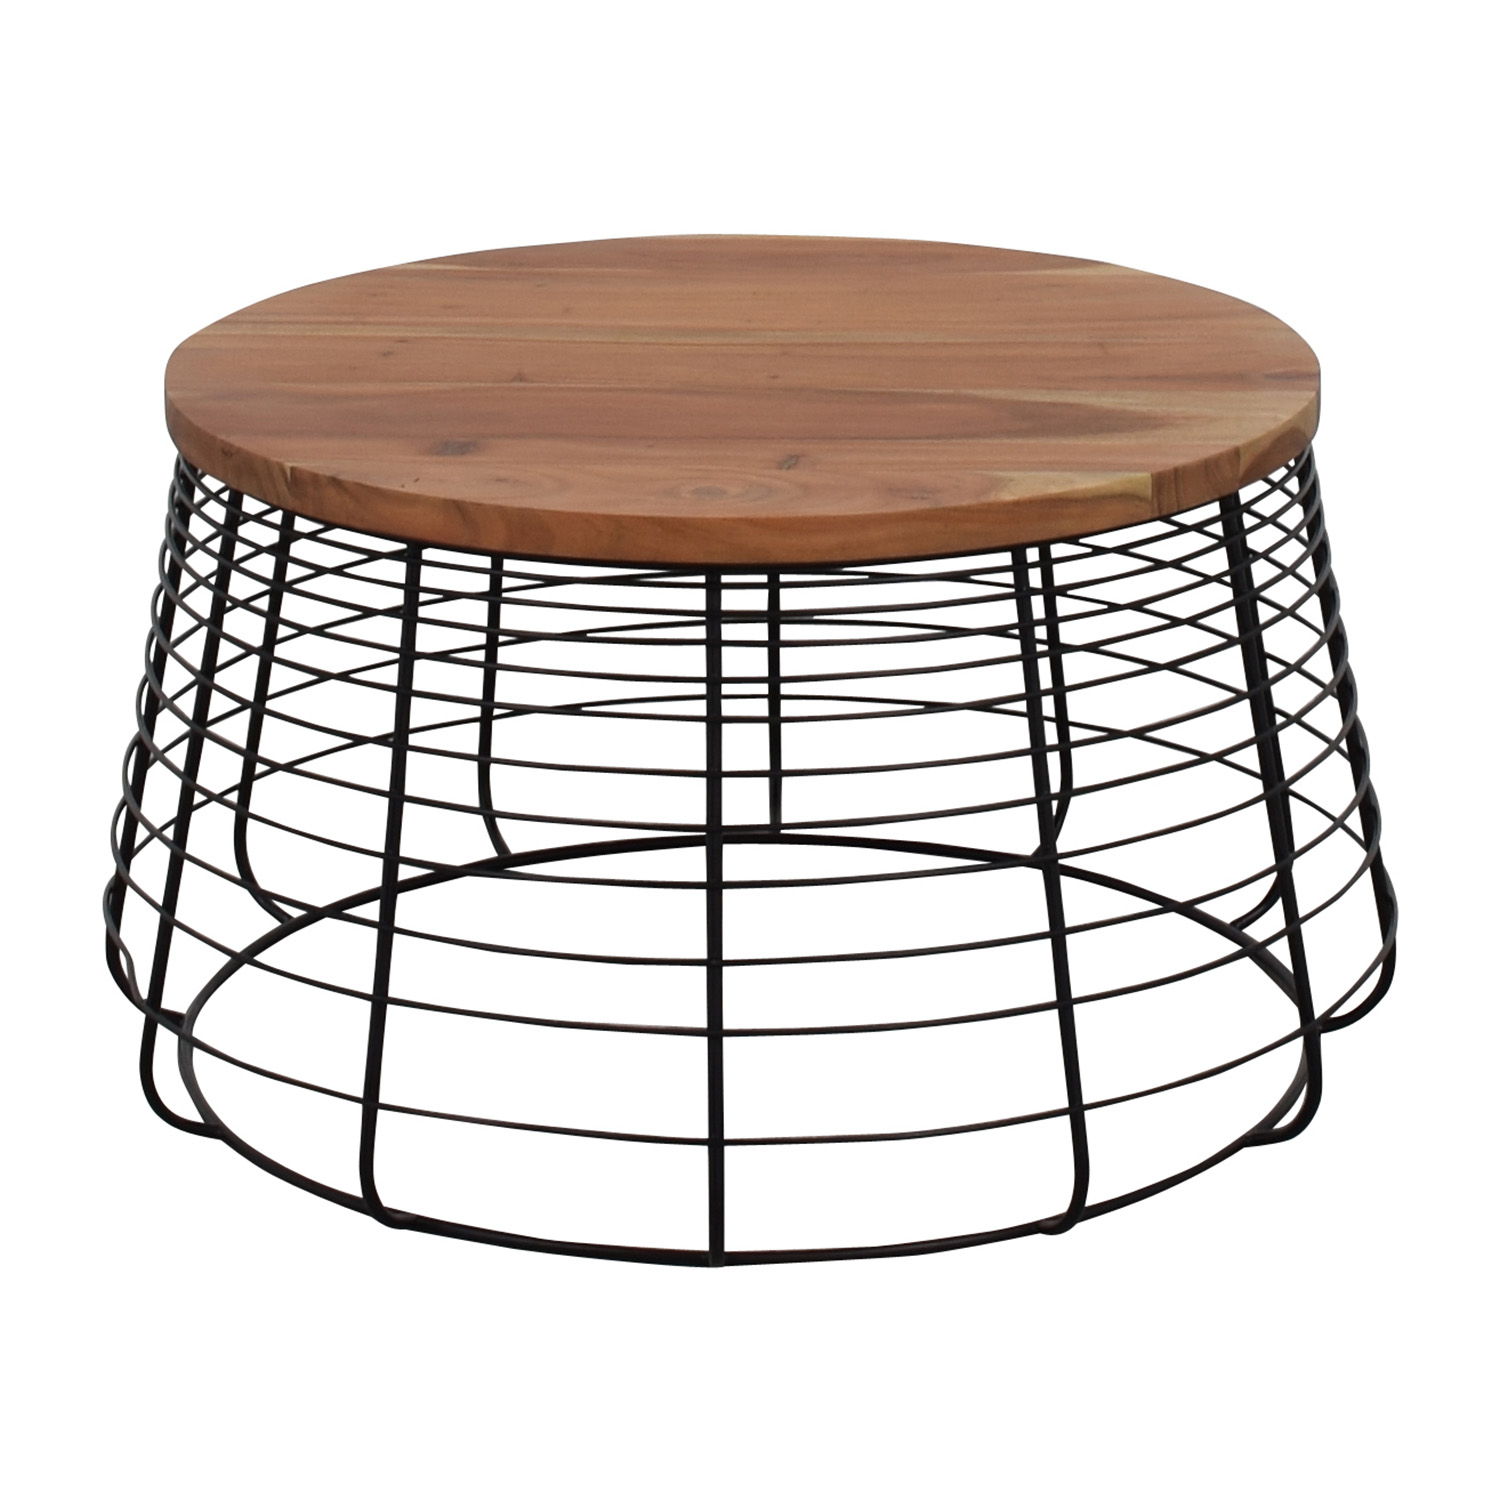 CB2 Round Wire Coffee Table sale